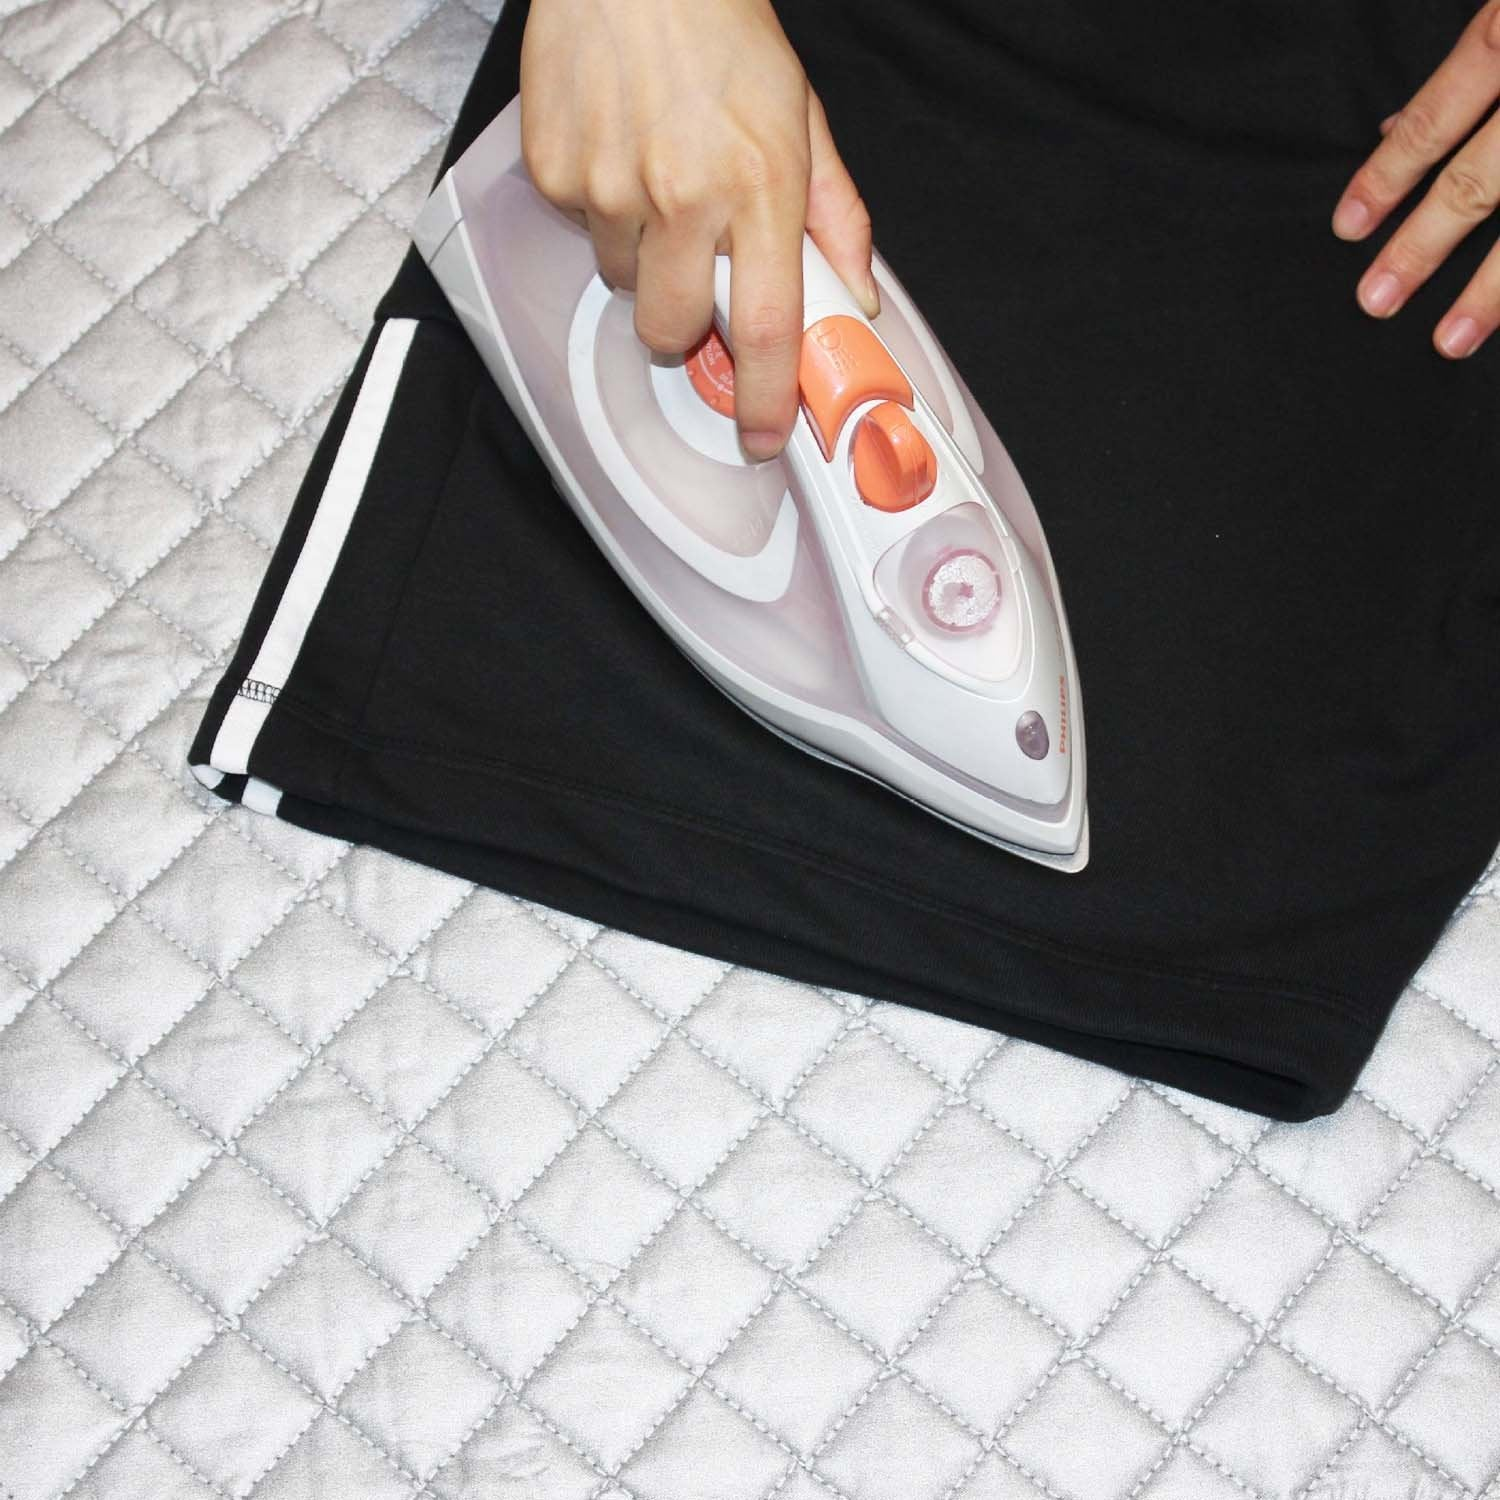 New Ironing Magnetic Folding Mat